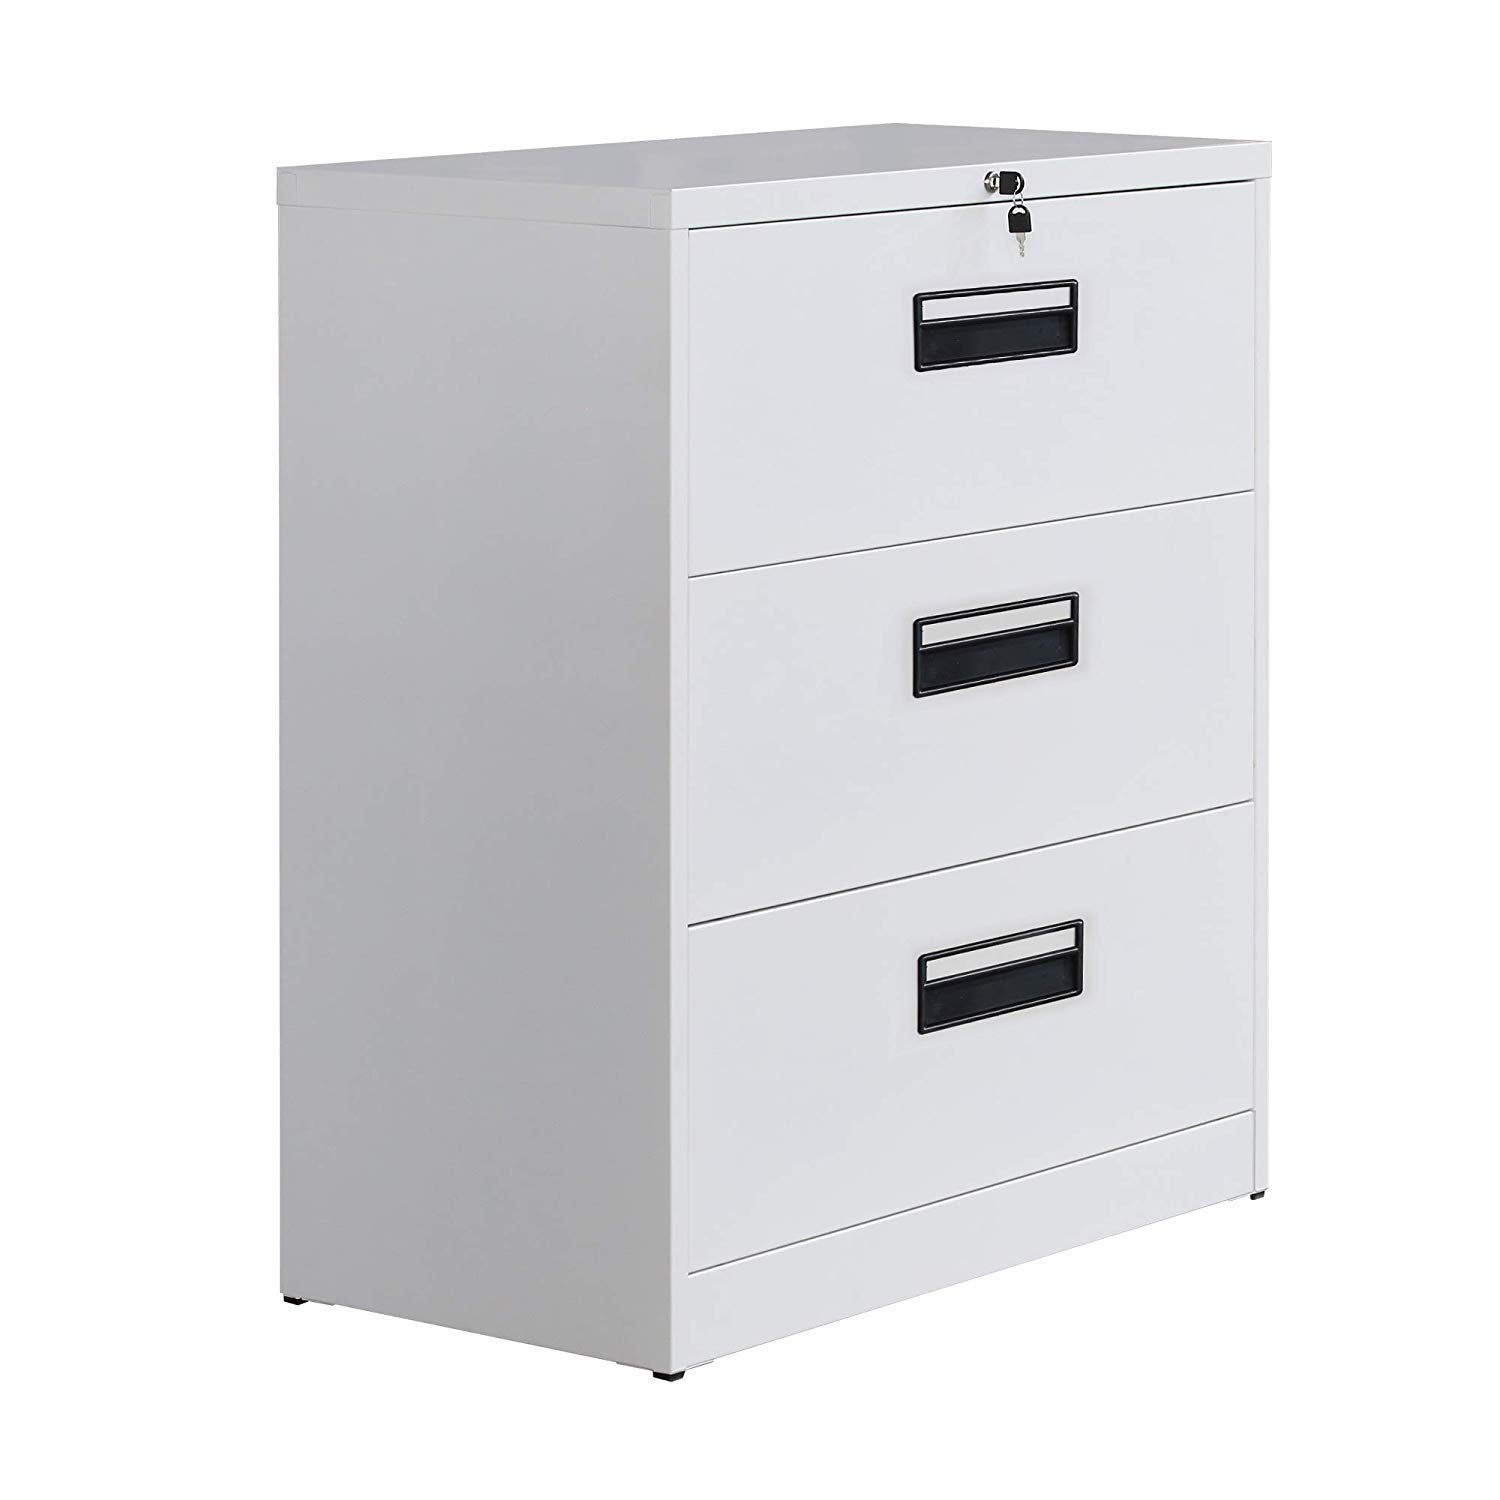 best website 22bc8 5cc76 Amazon.com : Danxee Lateral Metal Vertical File Cabinet with ...